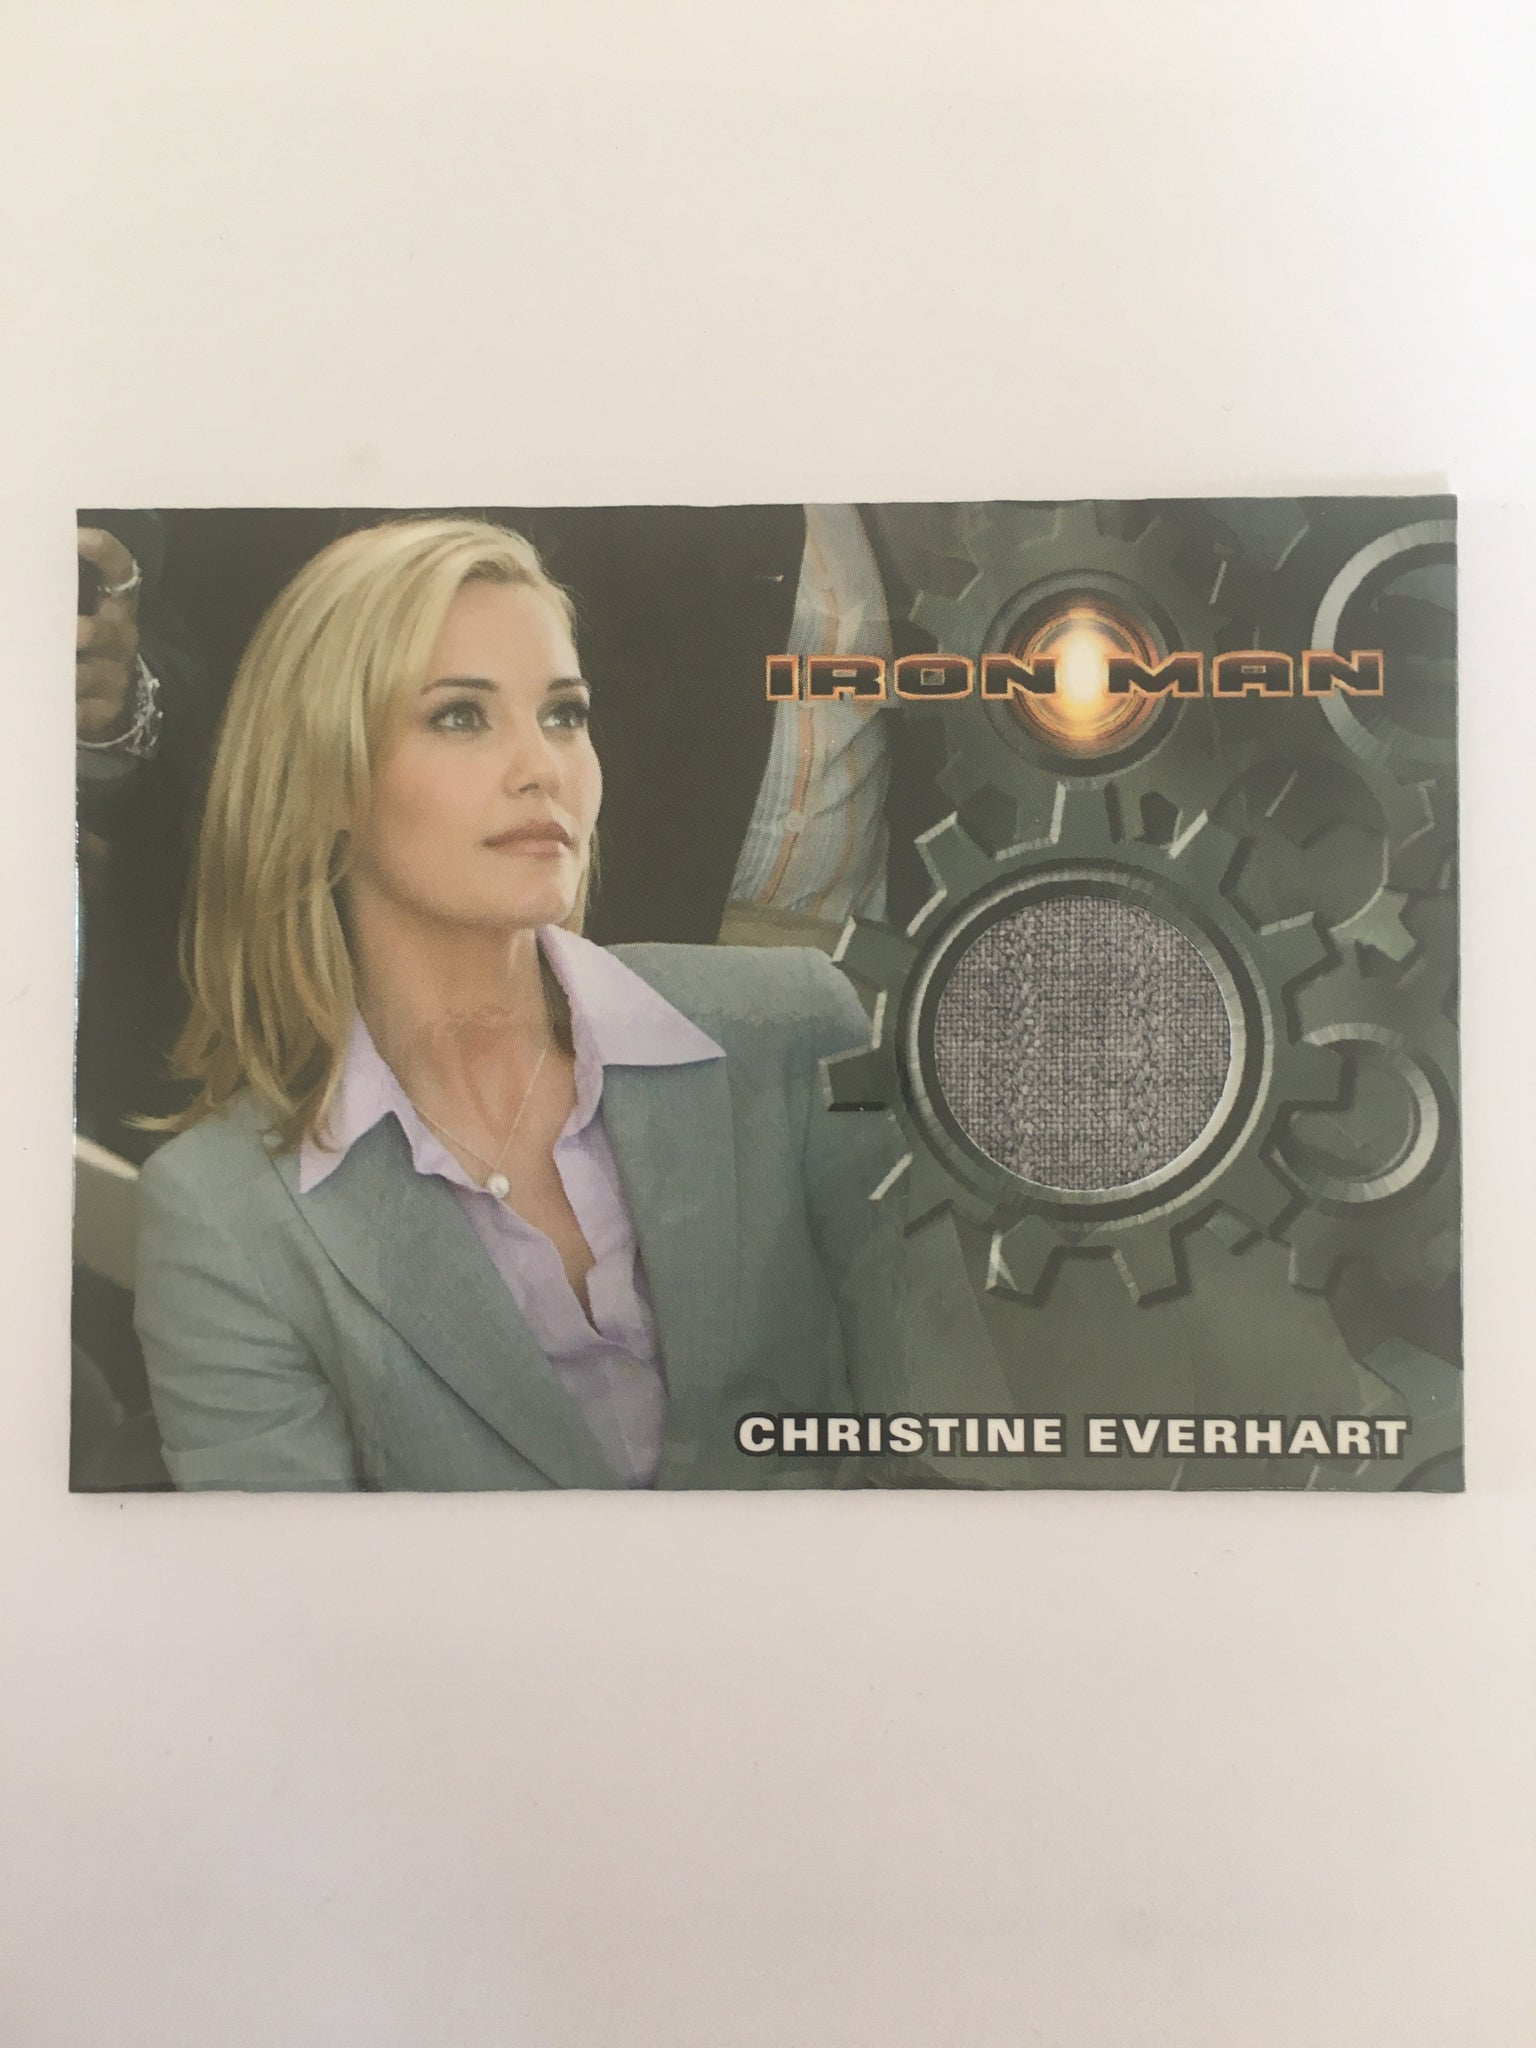 IRON MAN COSTUME (CHRISTINE EVERHART) - Limited & Rare Trading Card